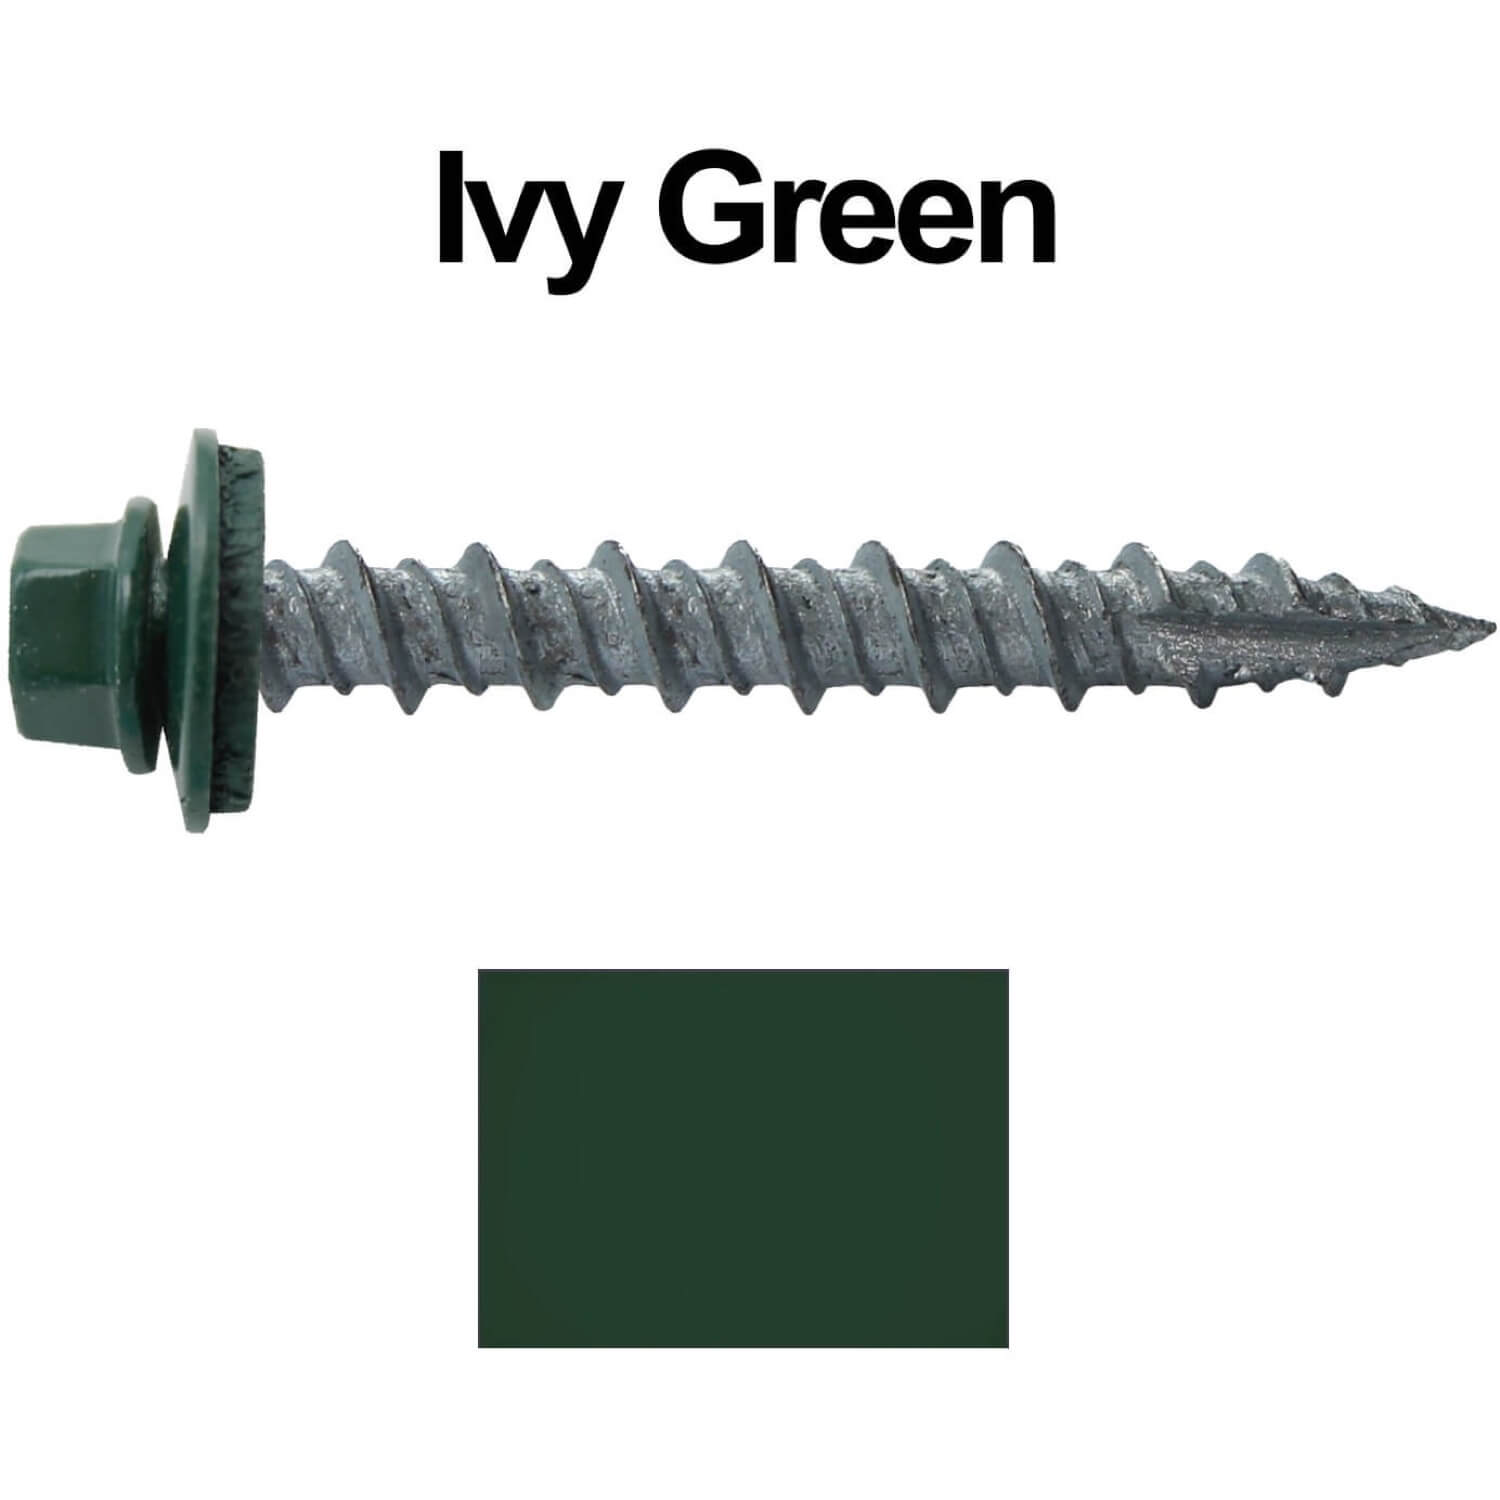 Metal Roofing Screws 250 10 X 1 1 2 Forest Ivy Green Hex Head Sheet Metal Roof Screw Self Starting Metal To Wood Siding Screws Epdm